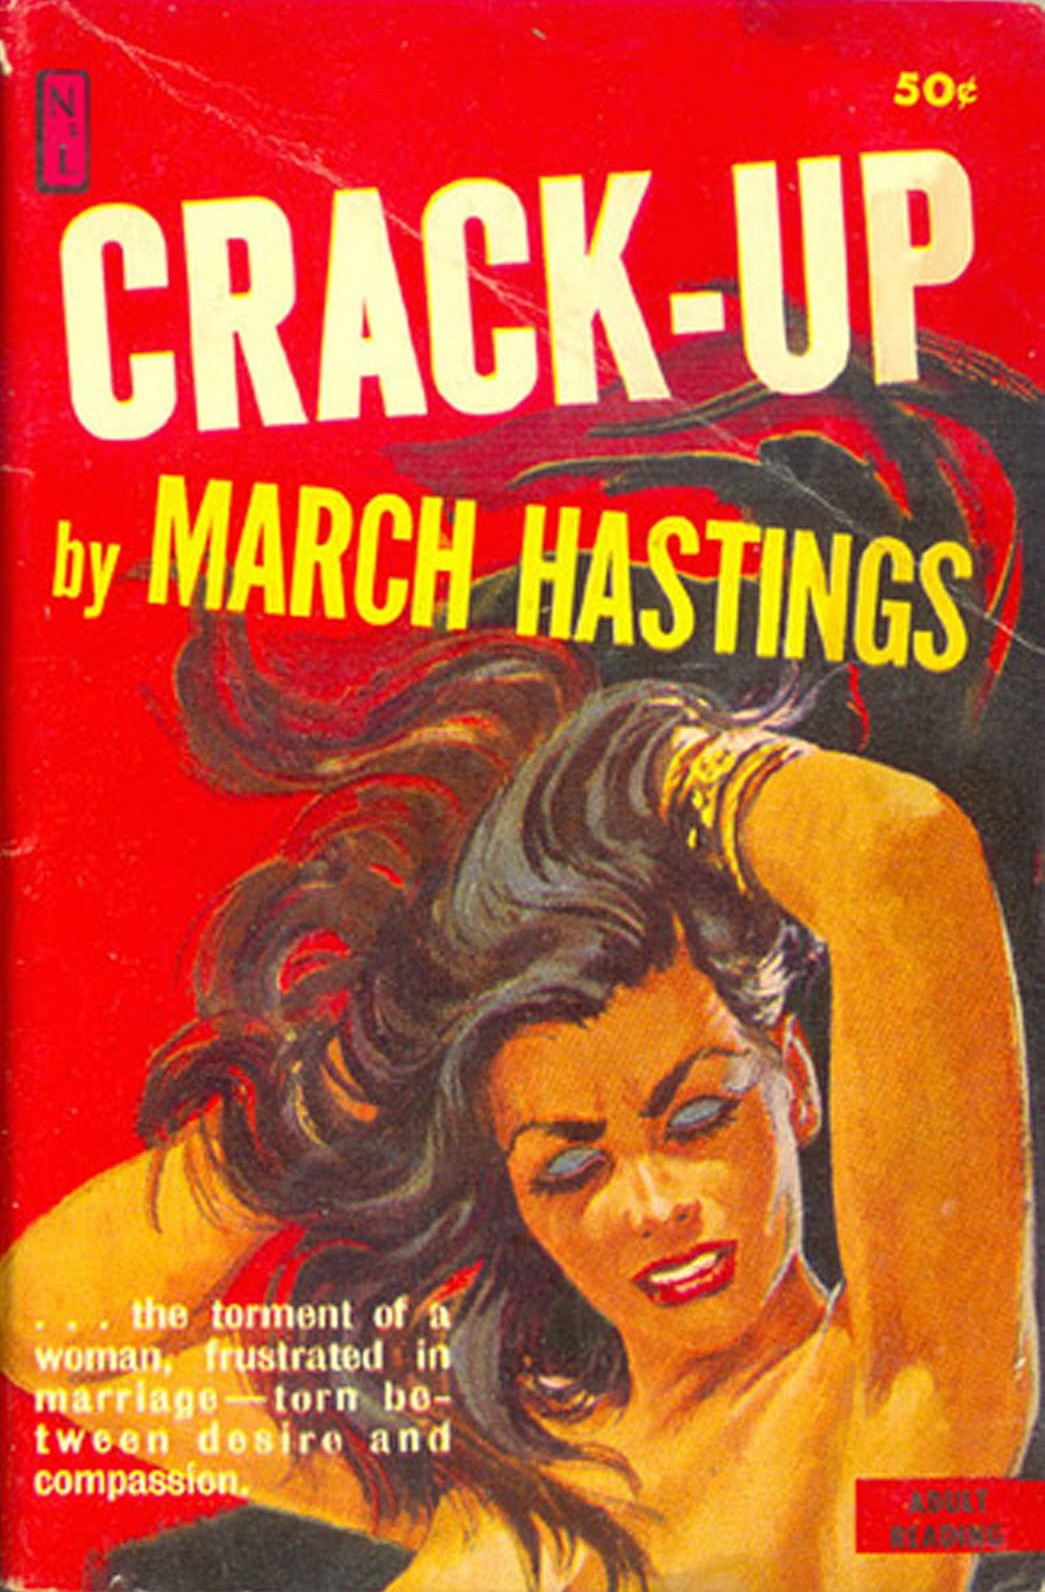 Crack Up book cover from 1950s pulp sex book, by March Hastings. Woman with hand in hair, face overly made up, looking lusty.